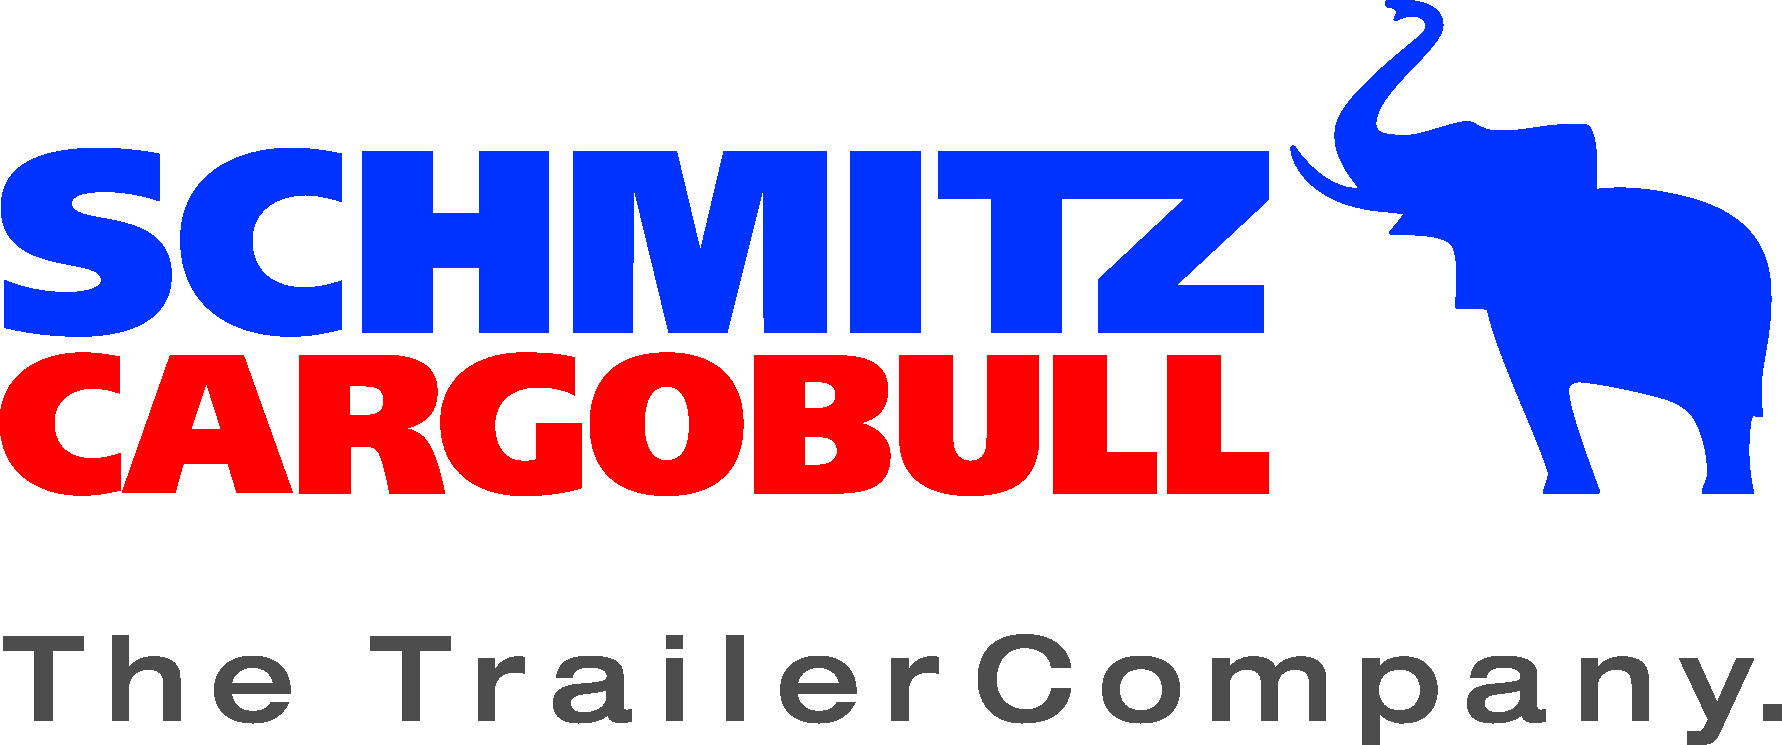 continental and schmitz cargobull strengthen their truck logo decals truck logos pictures